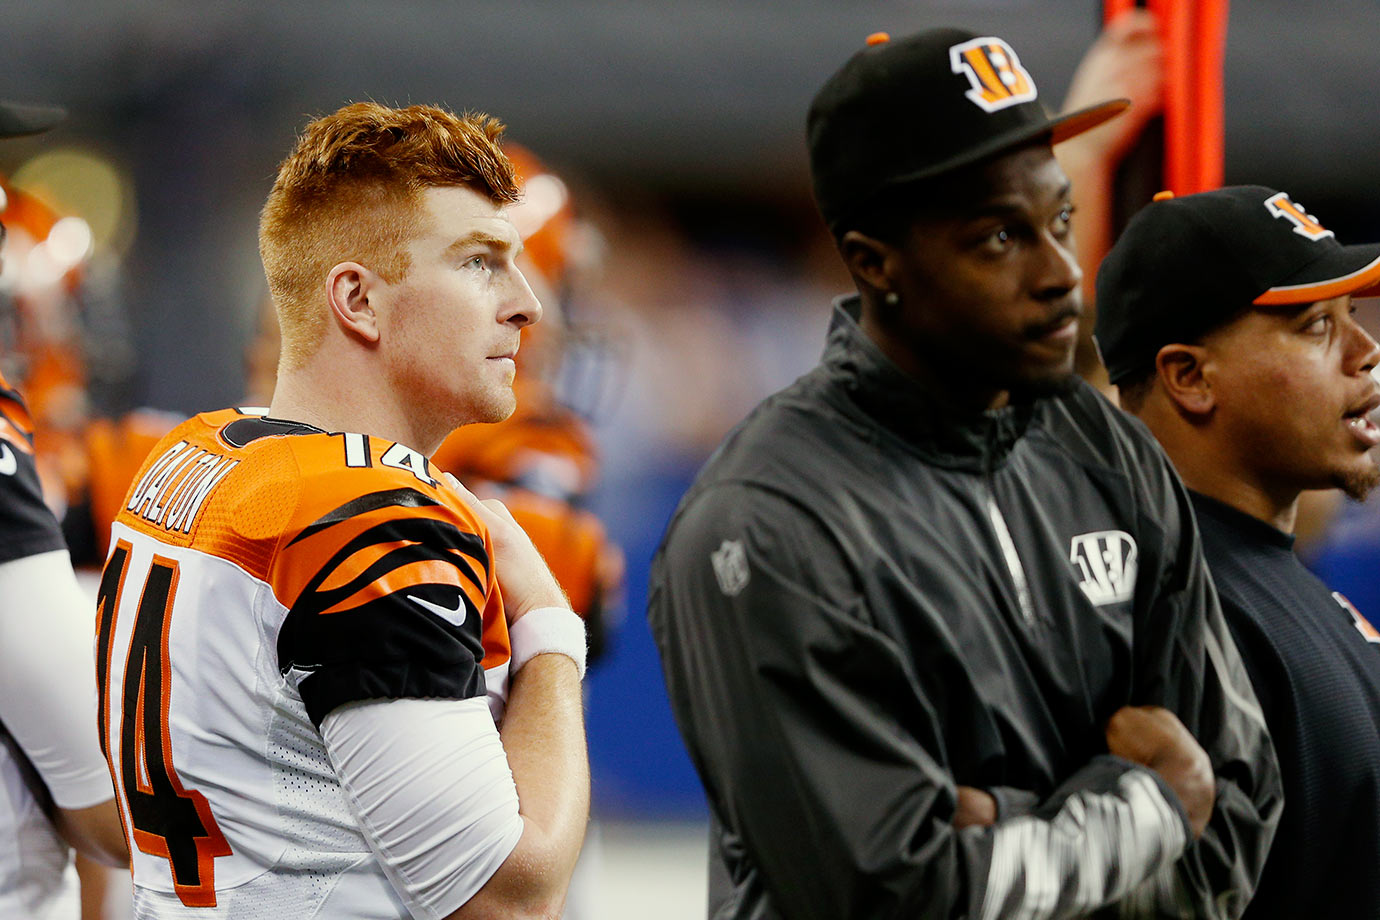 Both the Bengals defense and Andy Dalton took big steps back last year, which makes us question which versions will show up this year. The Red Rifle's offense endured a lot of injuries in 2014, but now they have one of the toughest schedules in the NFL.